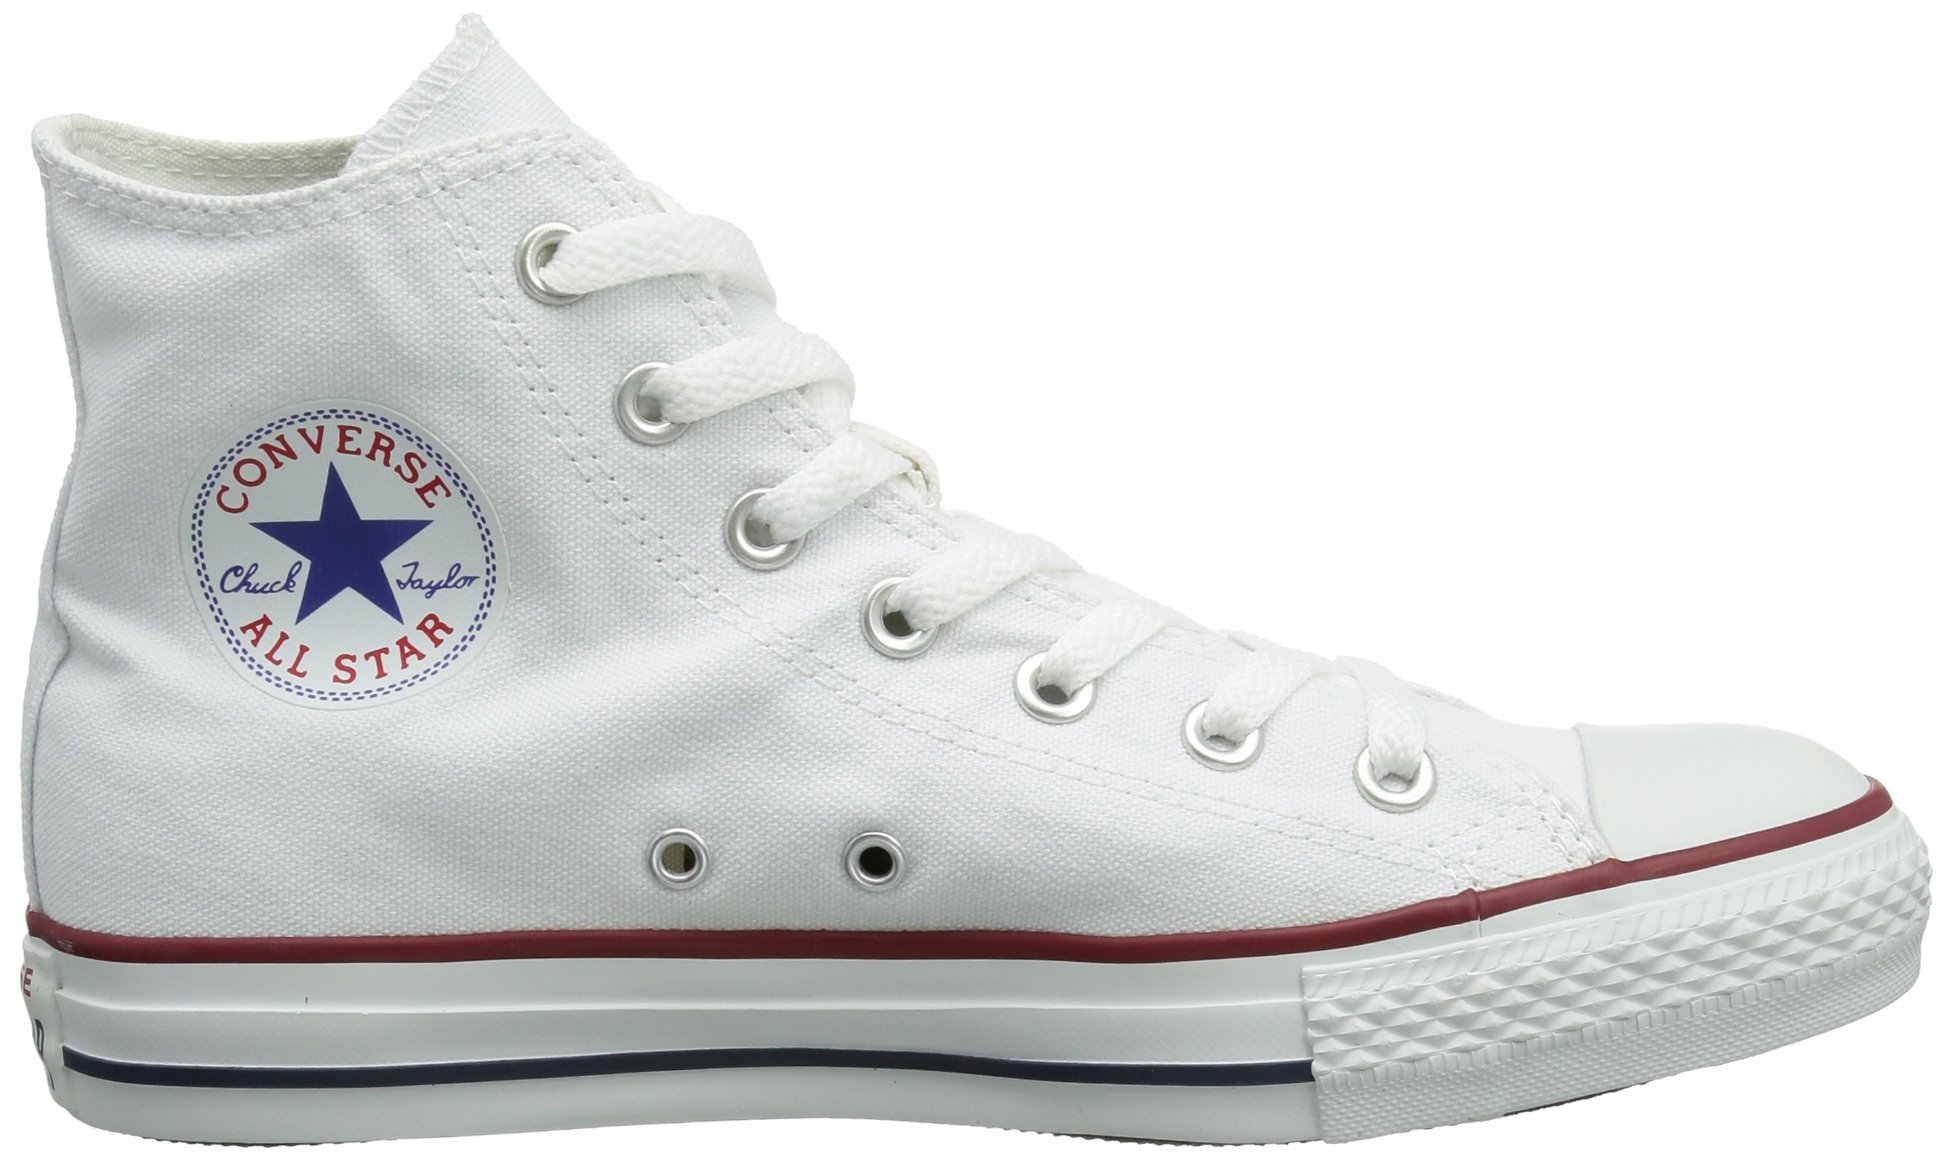 Converse Clothing & Apparel Chuck Taylor All Star High Top Sneaker, Optical White, 9.5 M US